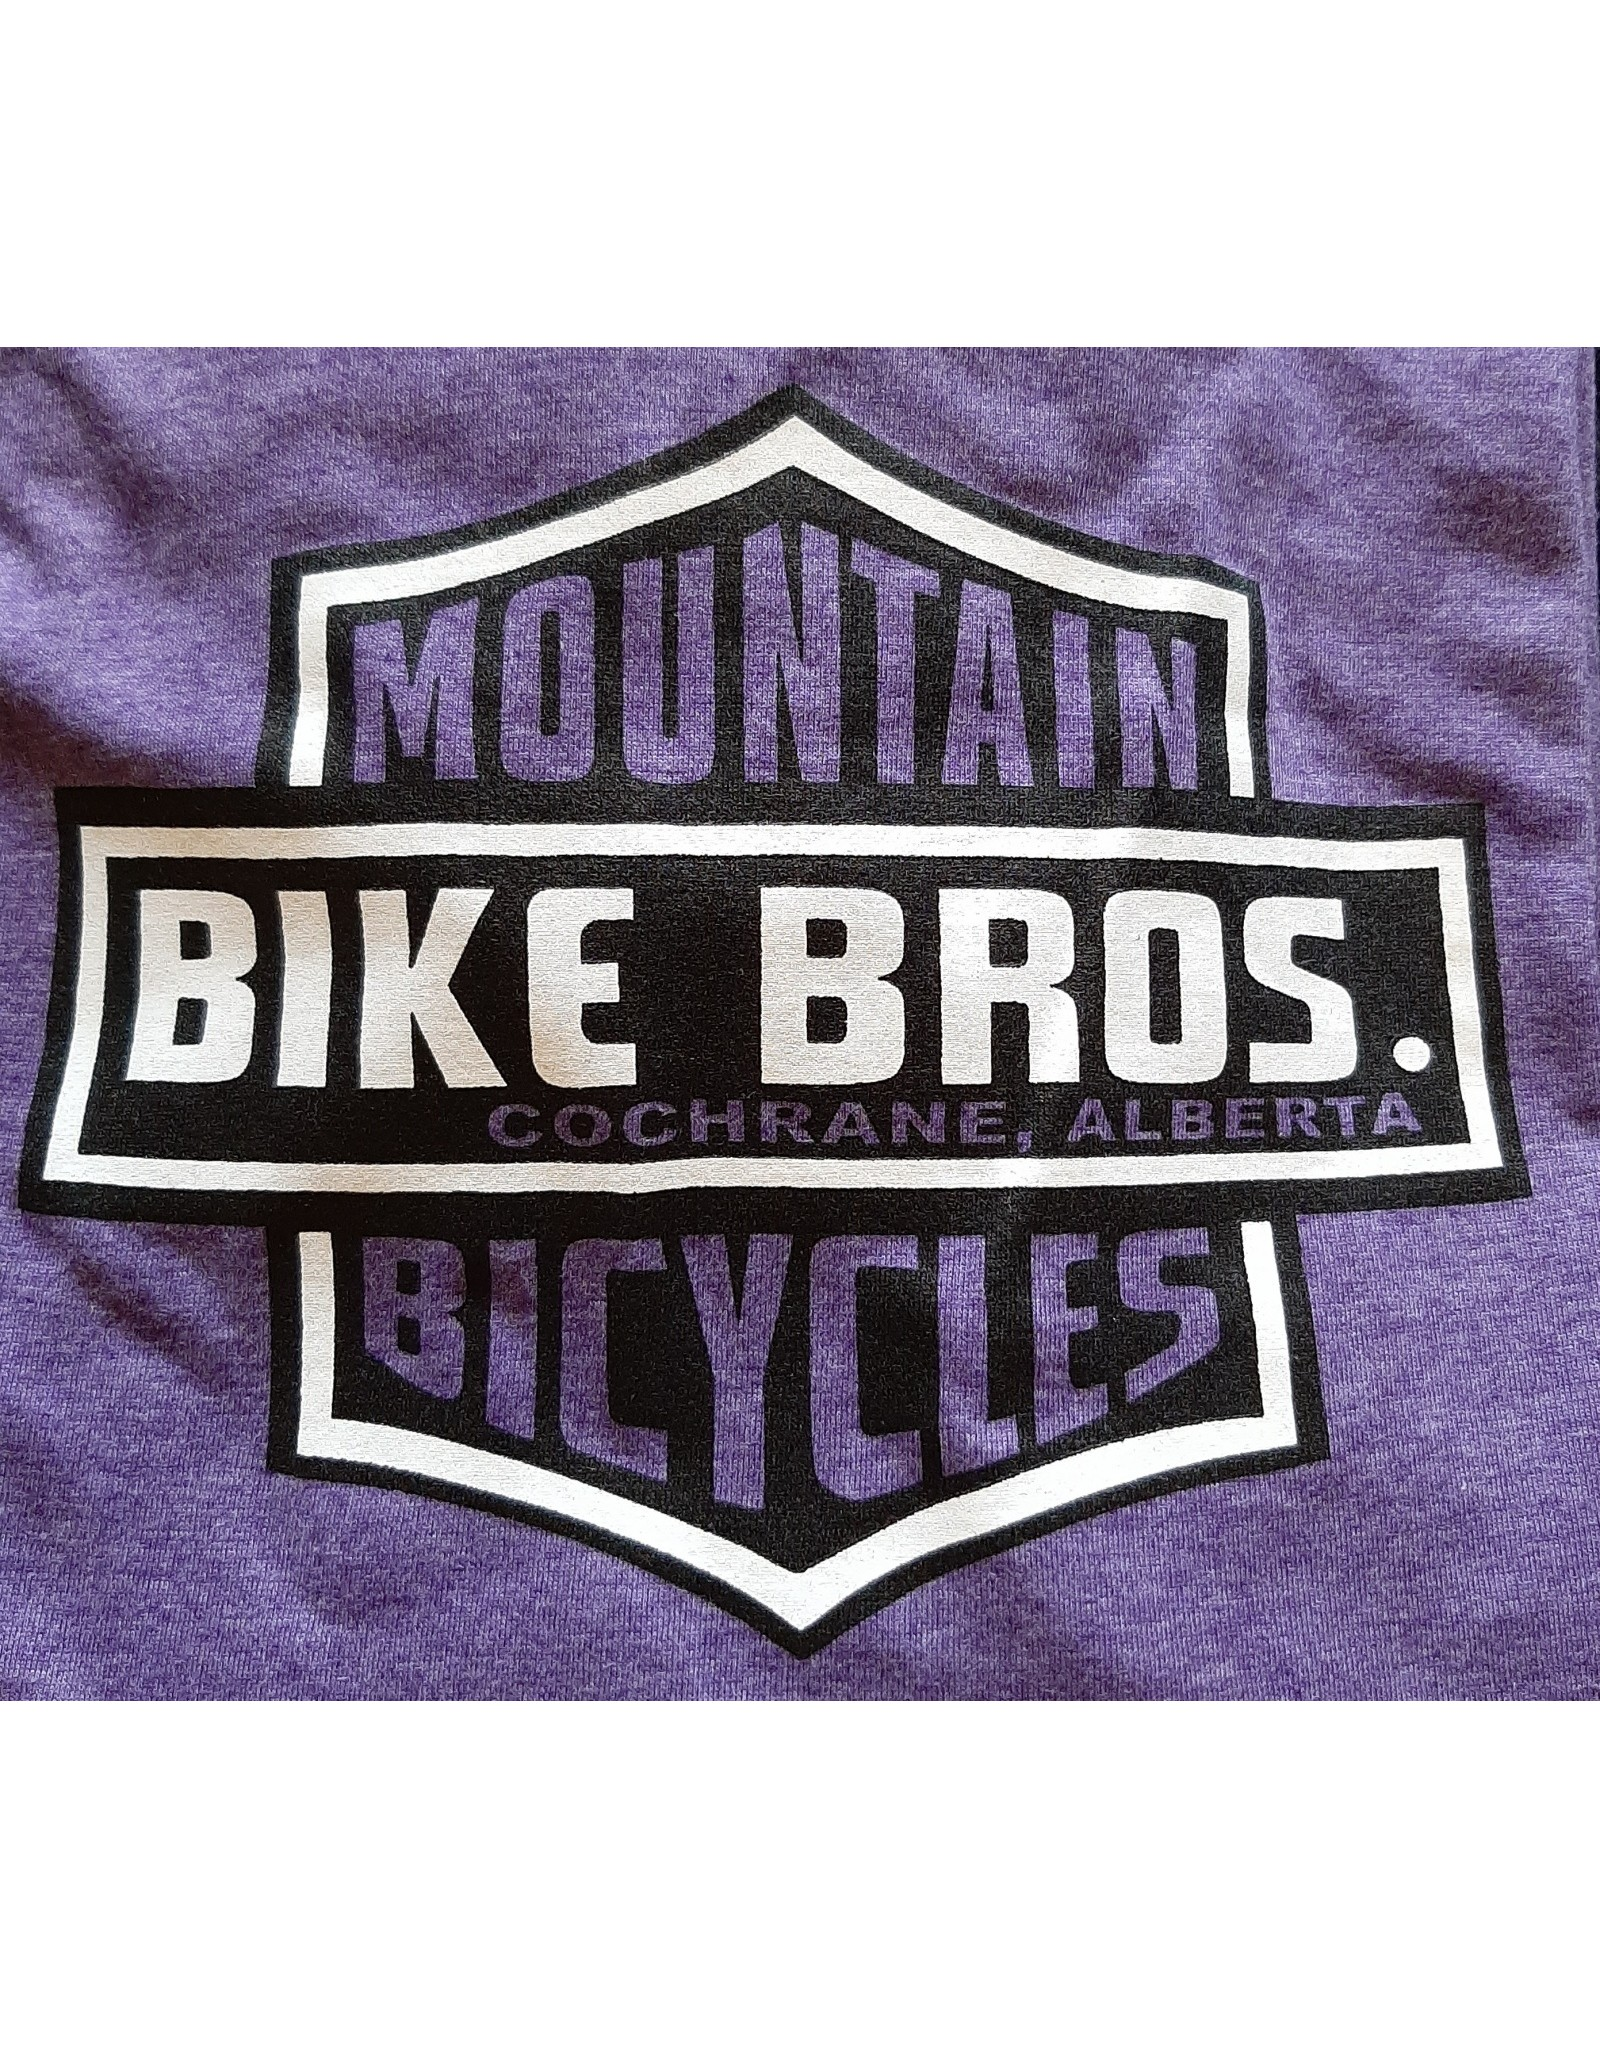 Bike Bros. Kinda Crest - Baseball 3/4 Sleeve - Bike Bros Shirt